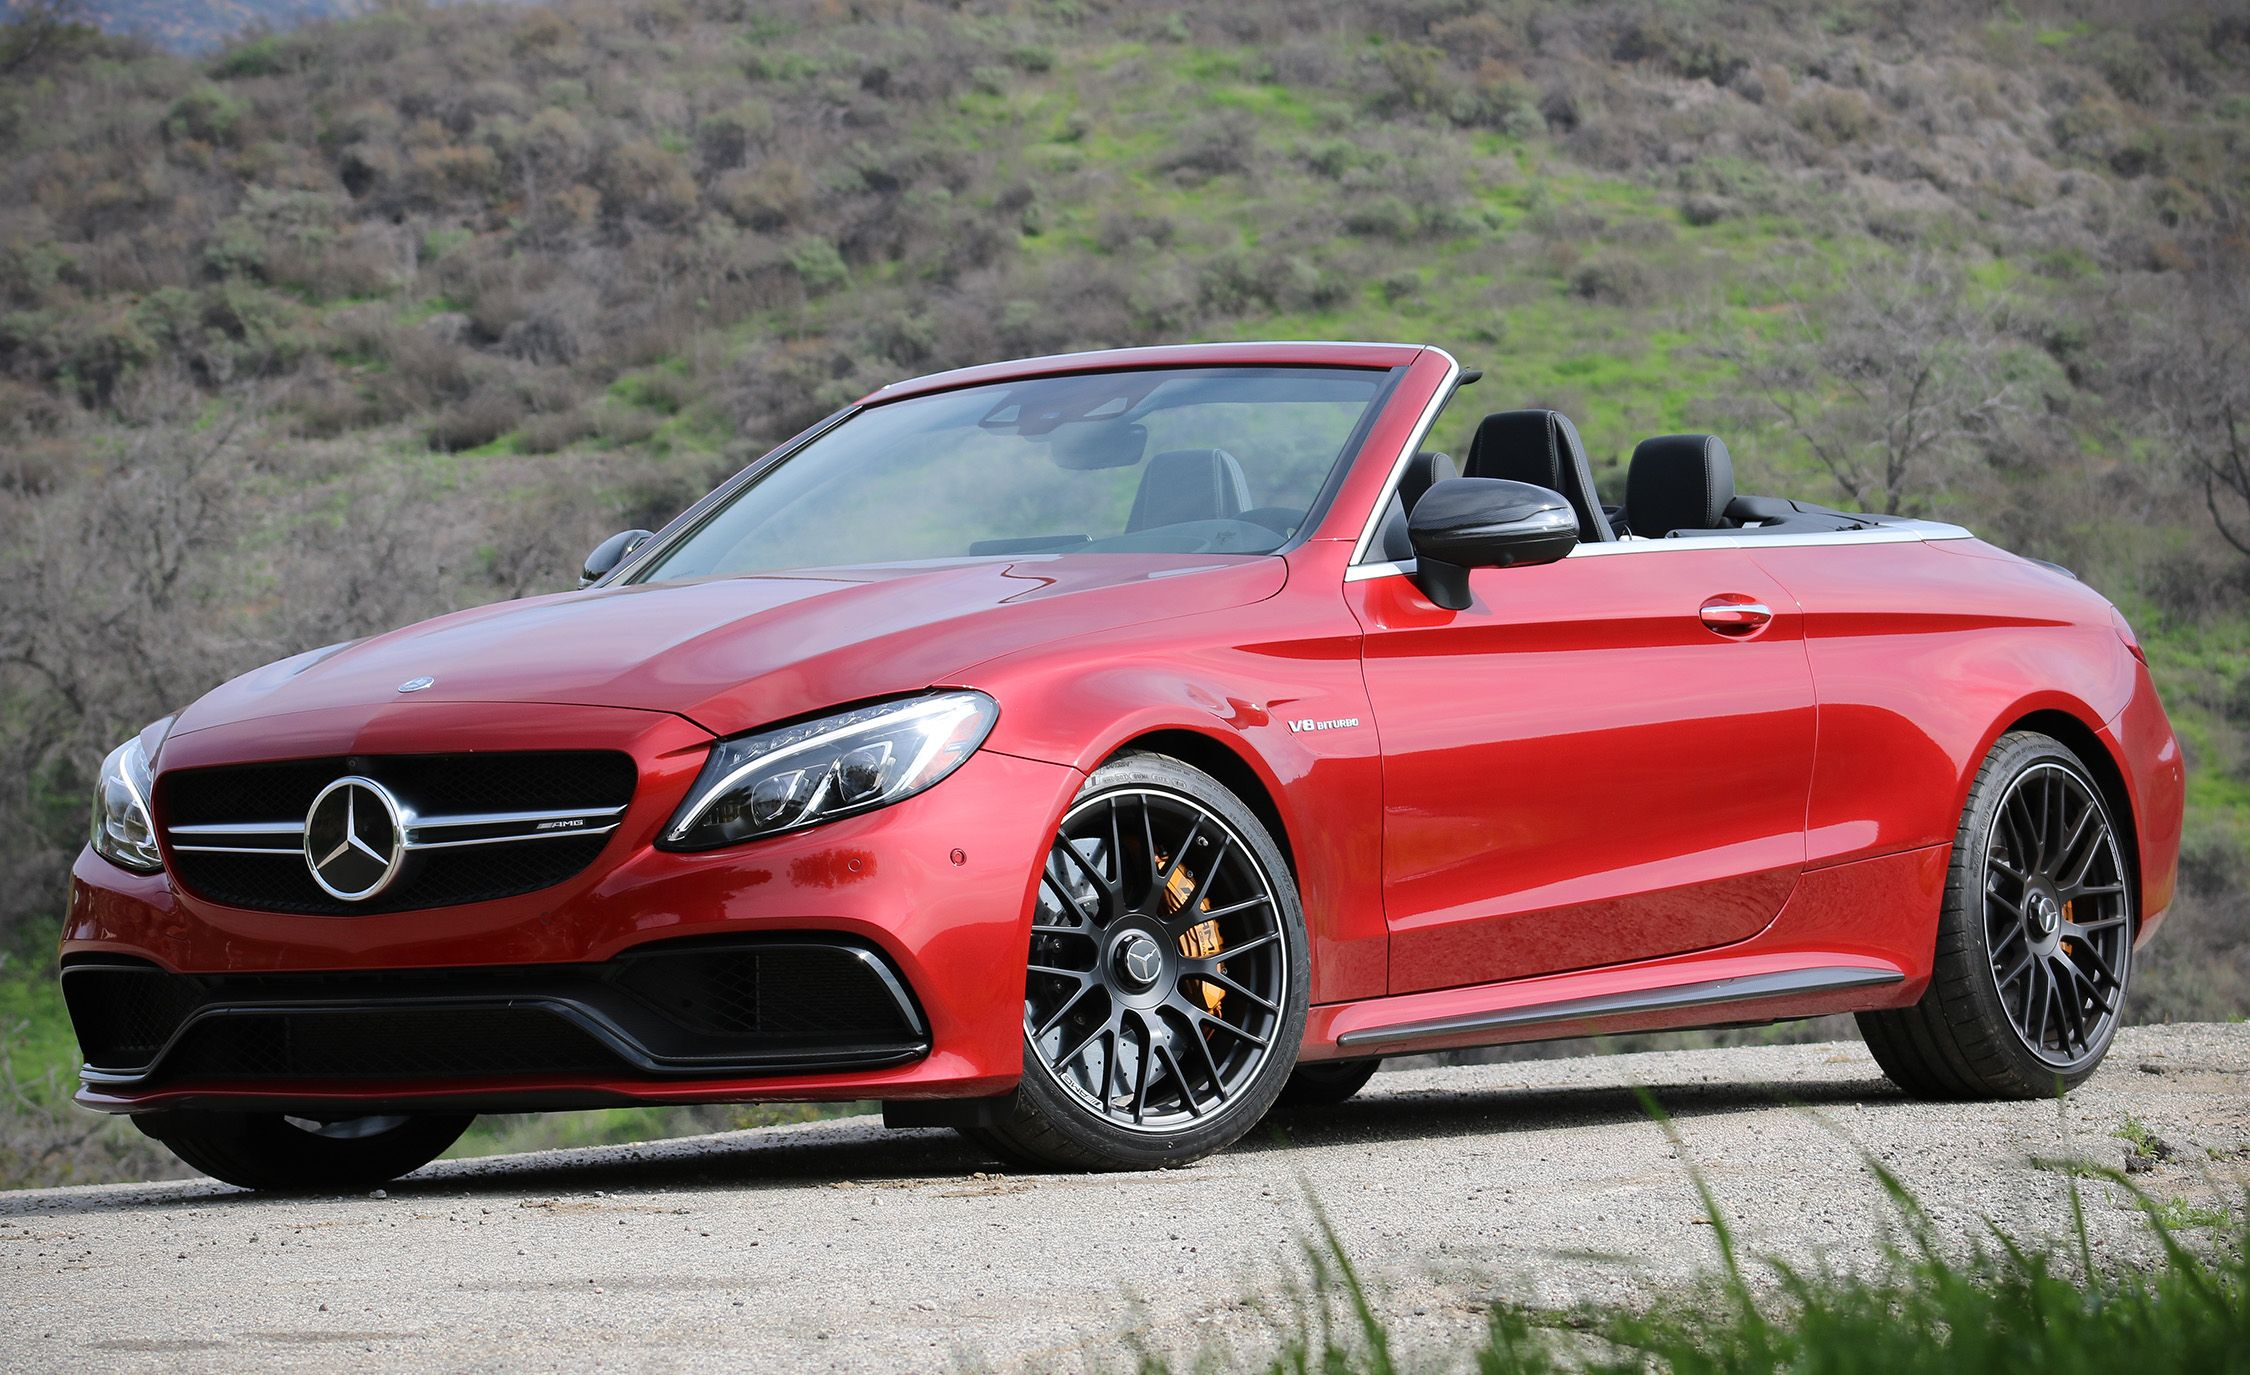 2017 Mercedes Amg C63 Cabriolet Test 8211 Review Car And Driver